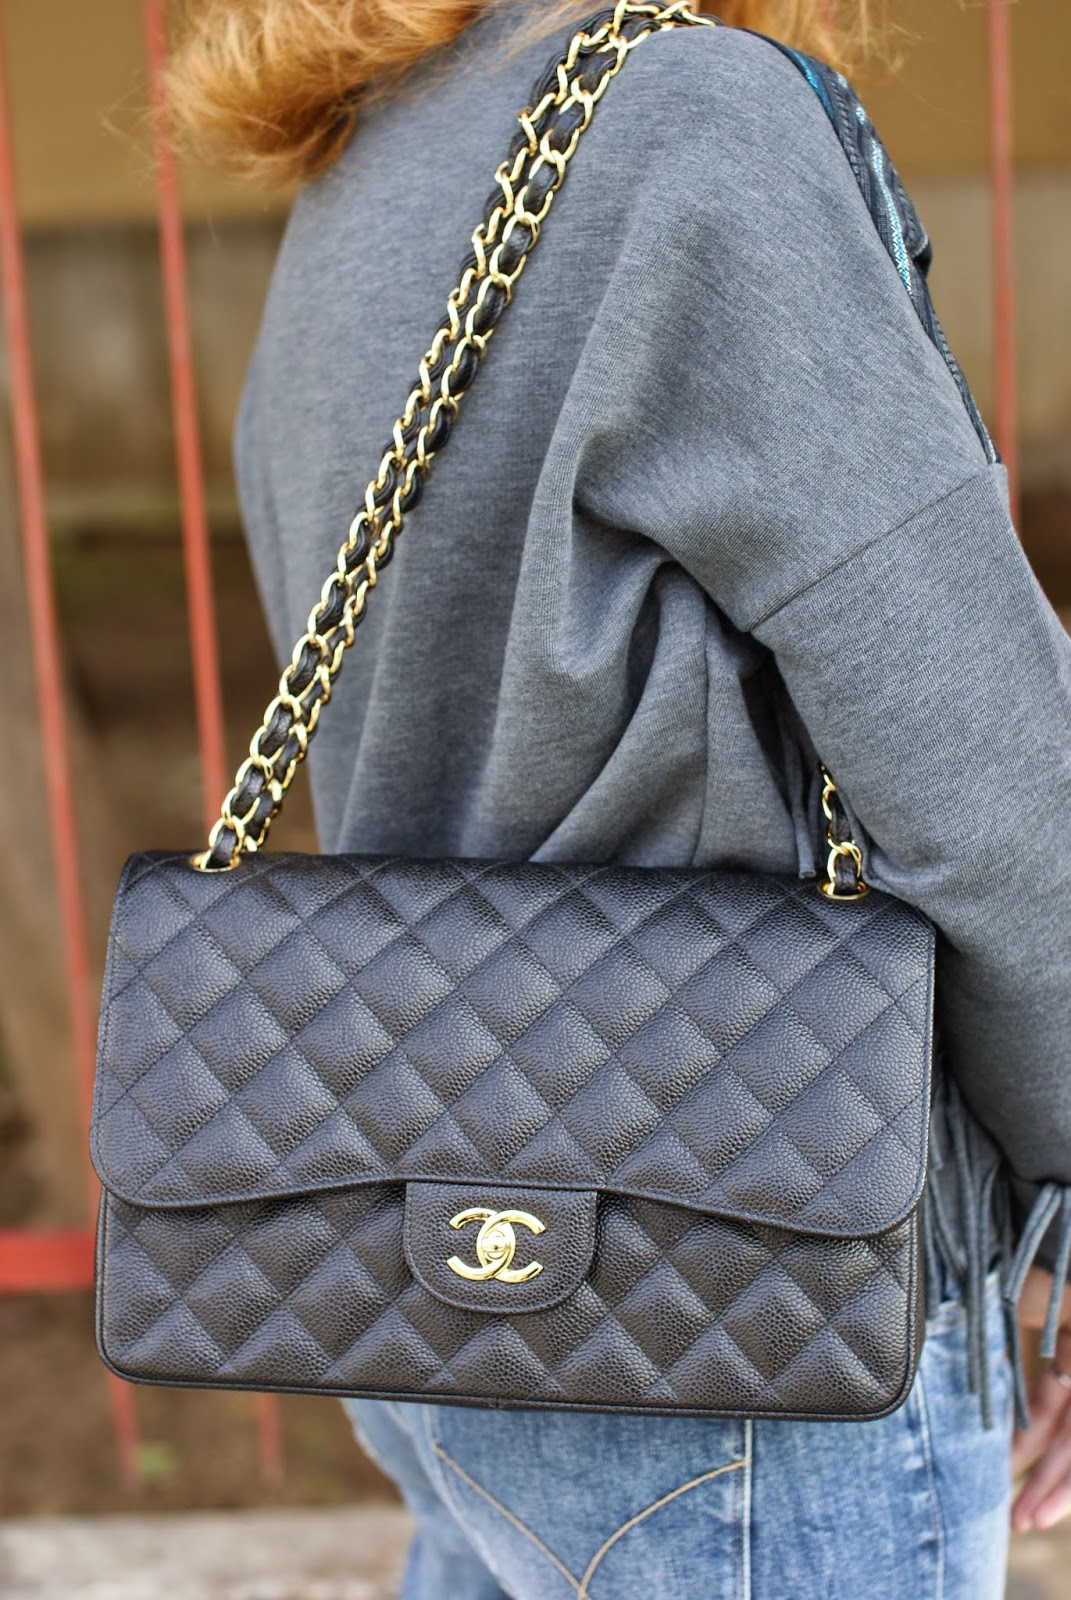 Chanel 2.55 bag, Chanel classic flap caviar, Fashion and Cookies fashion blog, fashion blogger